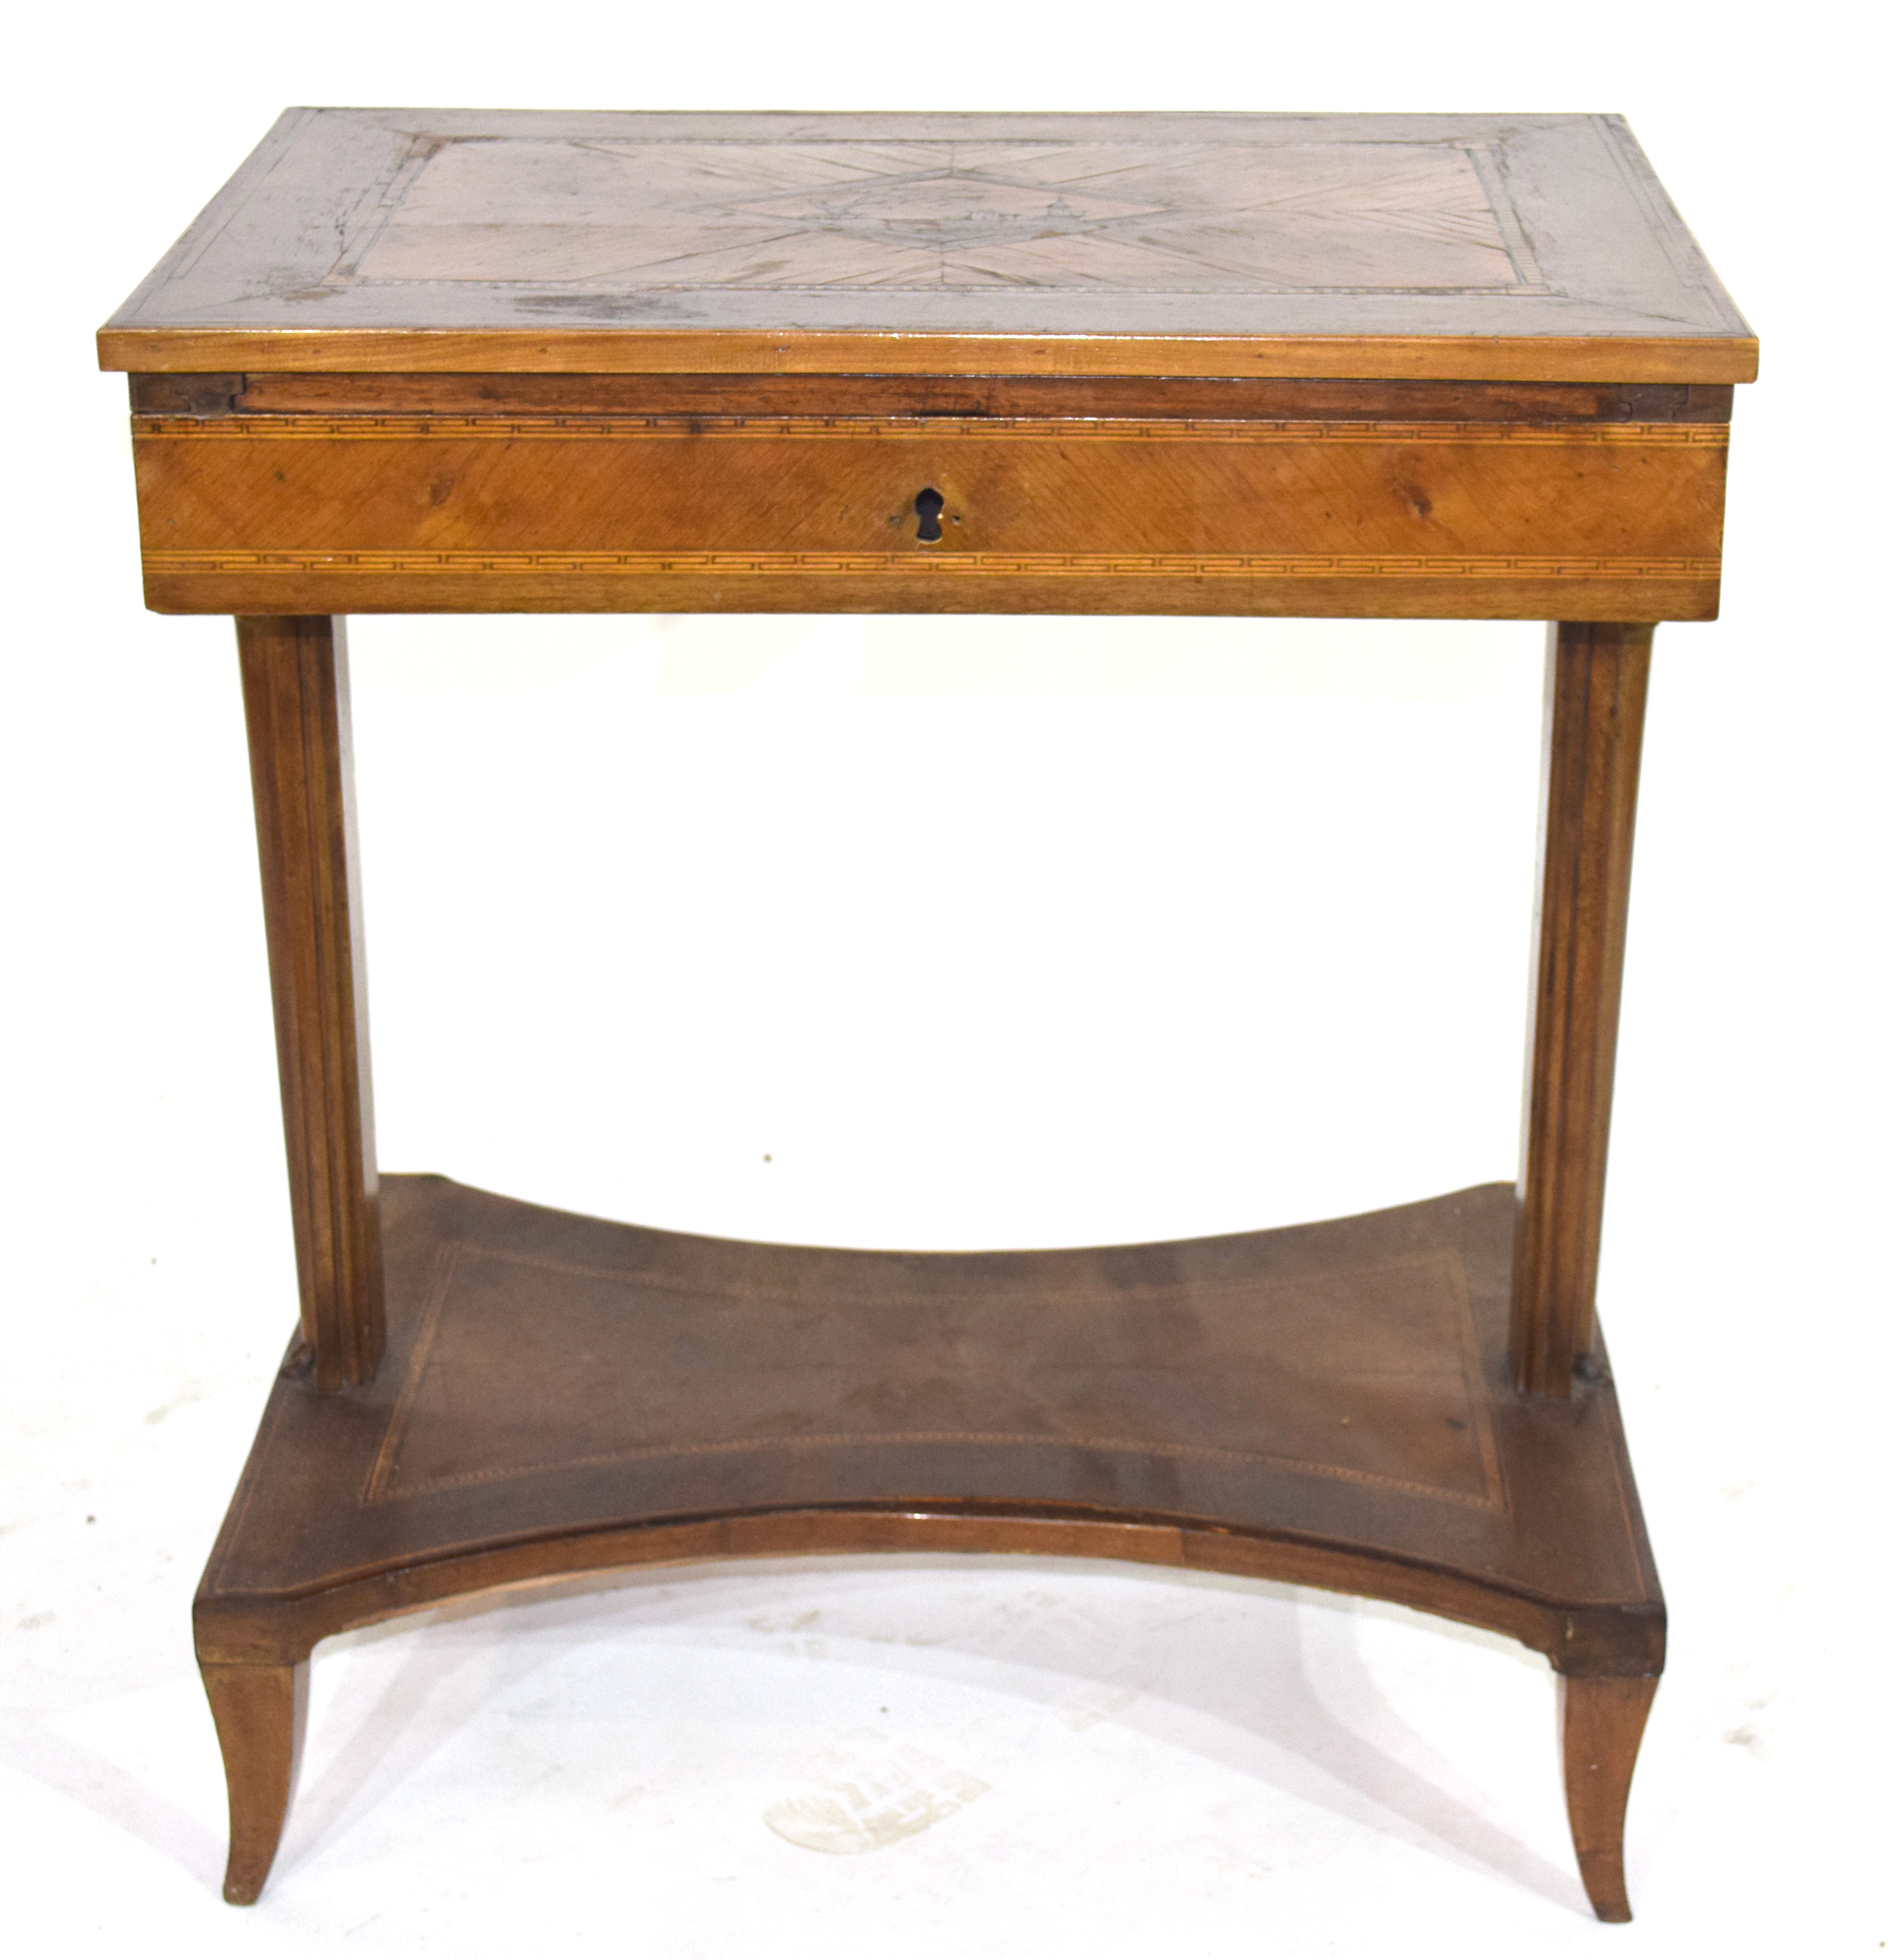 19th century Continental metamorphic desk or work table, the inlaid sliding top opening to reveal